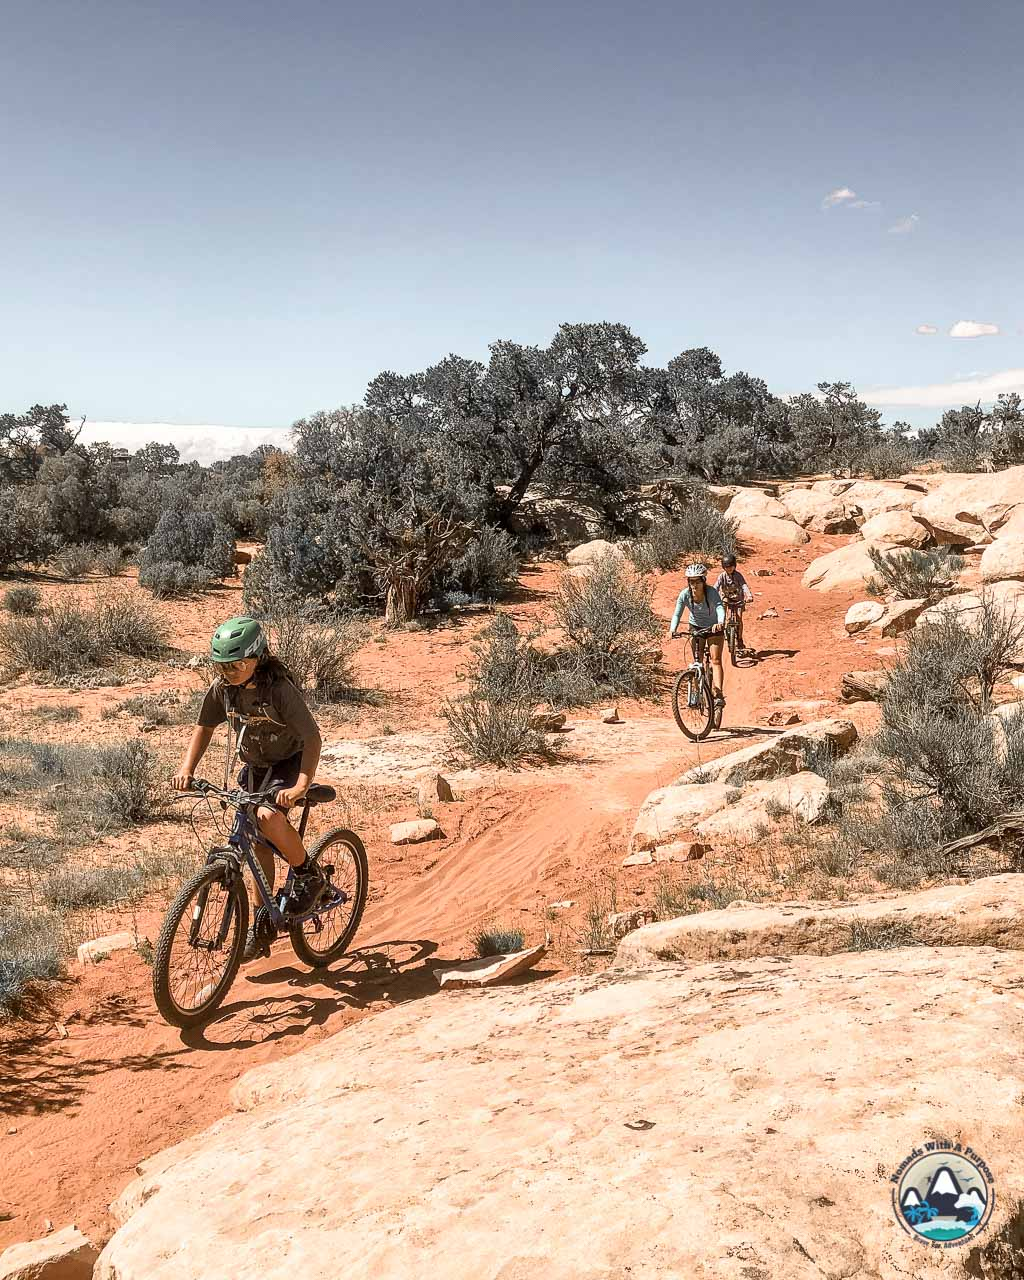 Mountain Bike in Moab as part of your Utah Road Trip Itinerary